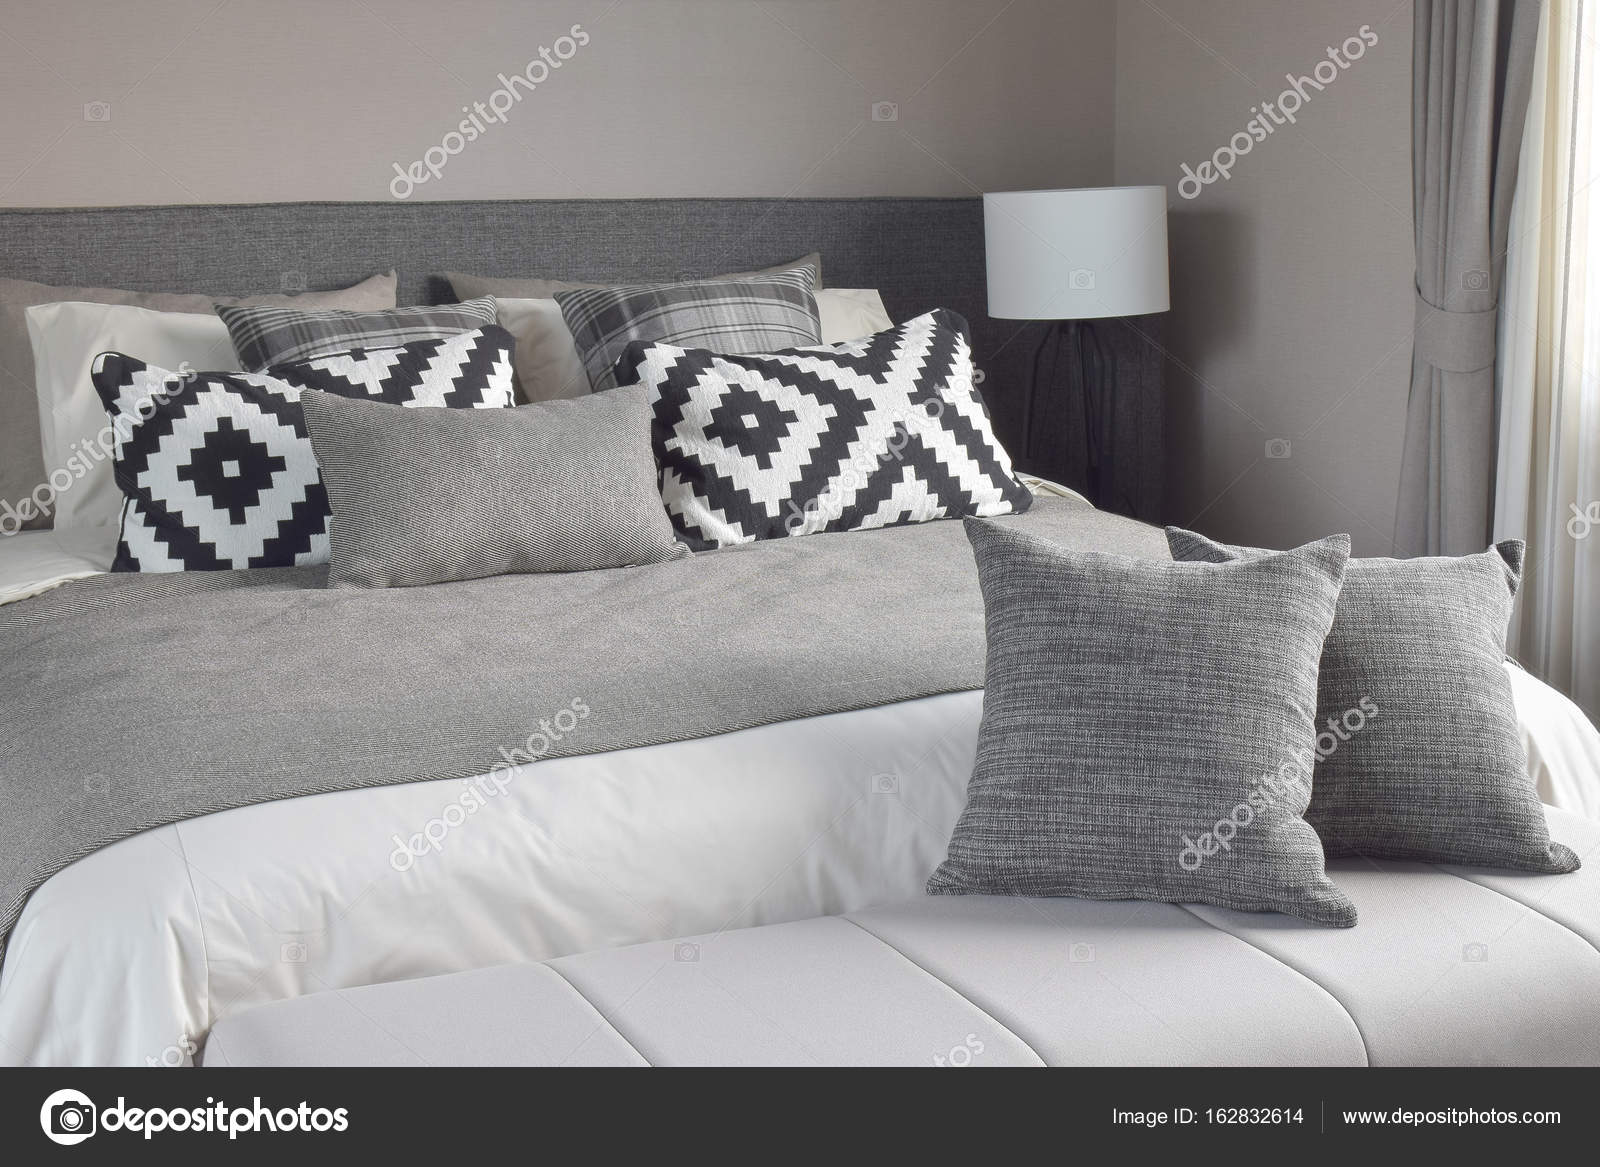 Graphic Style And Grey Shade Pillows On Classic Color Bedding Set Up U2014  Stock Photo